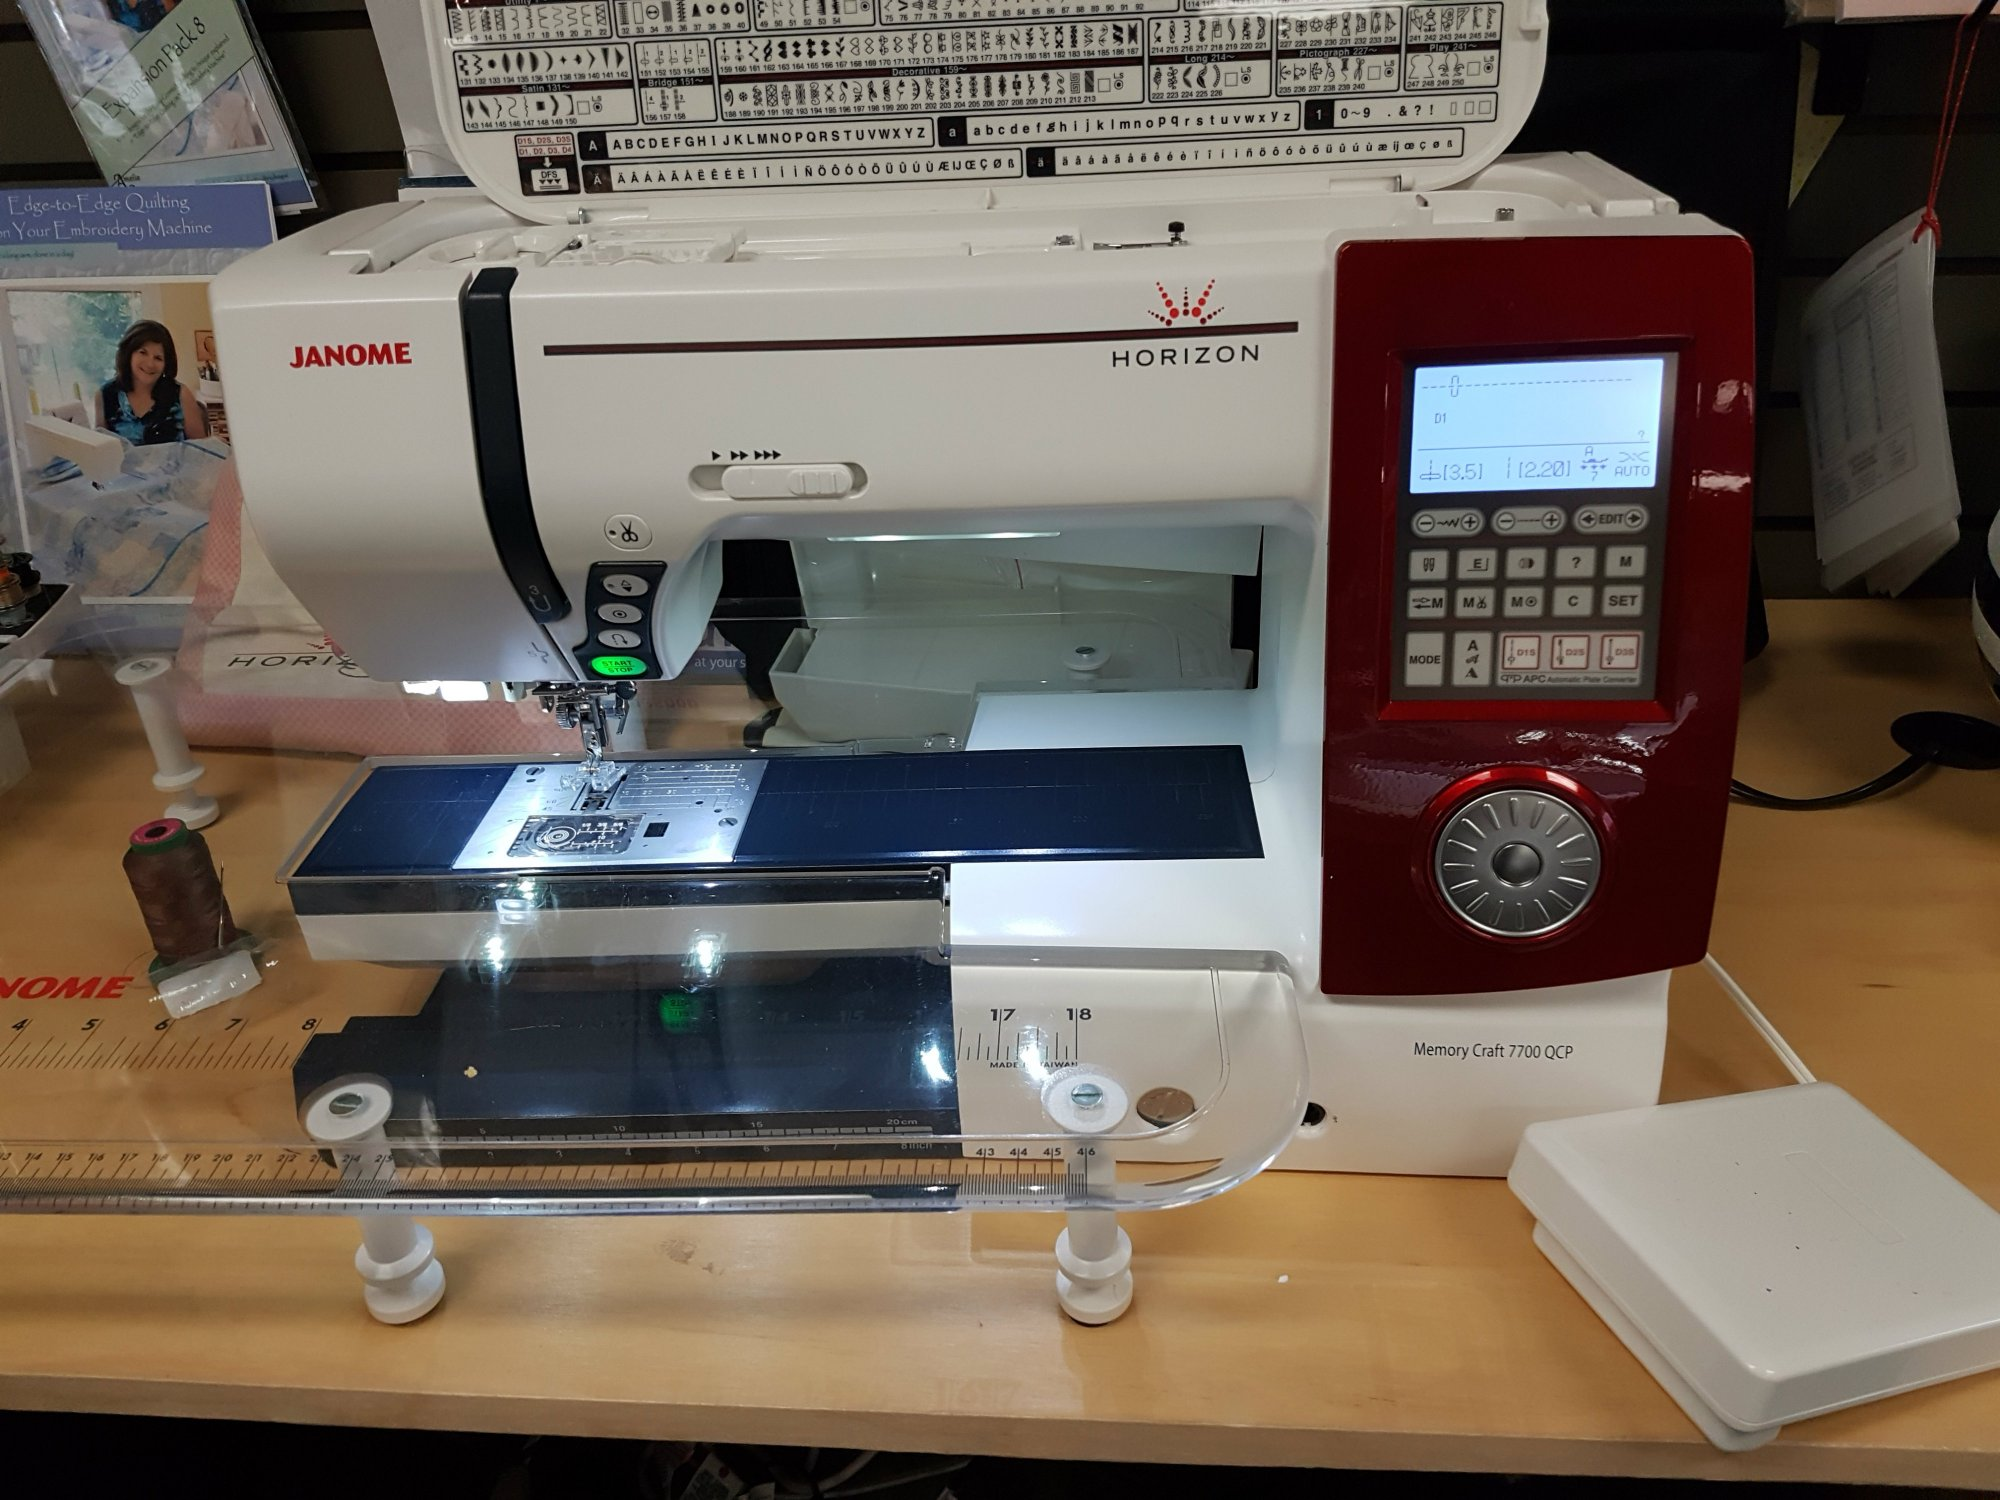 Janome MFC 7700 QCP (trade in)